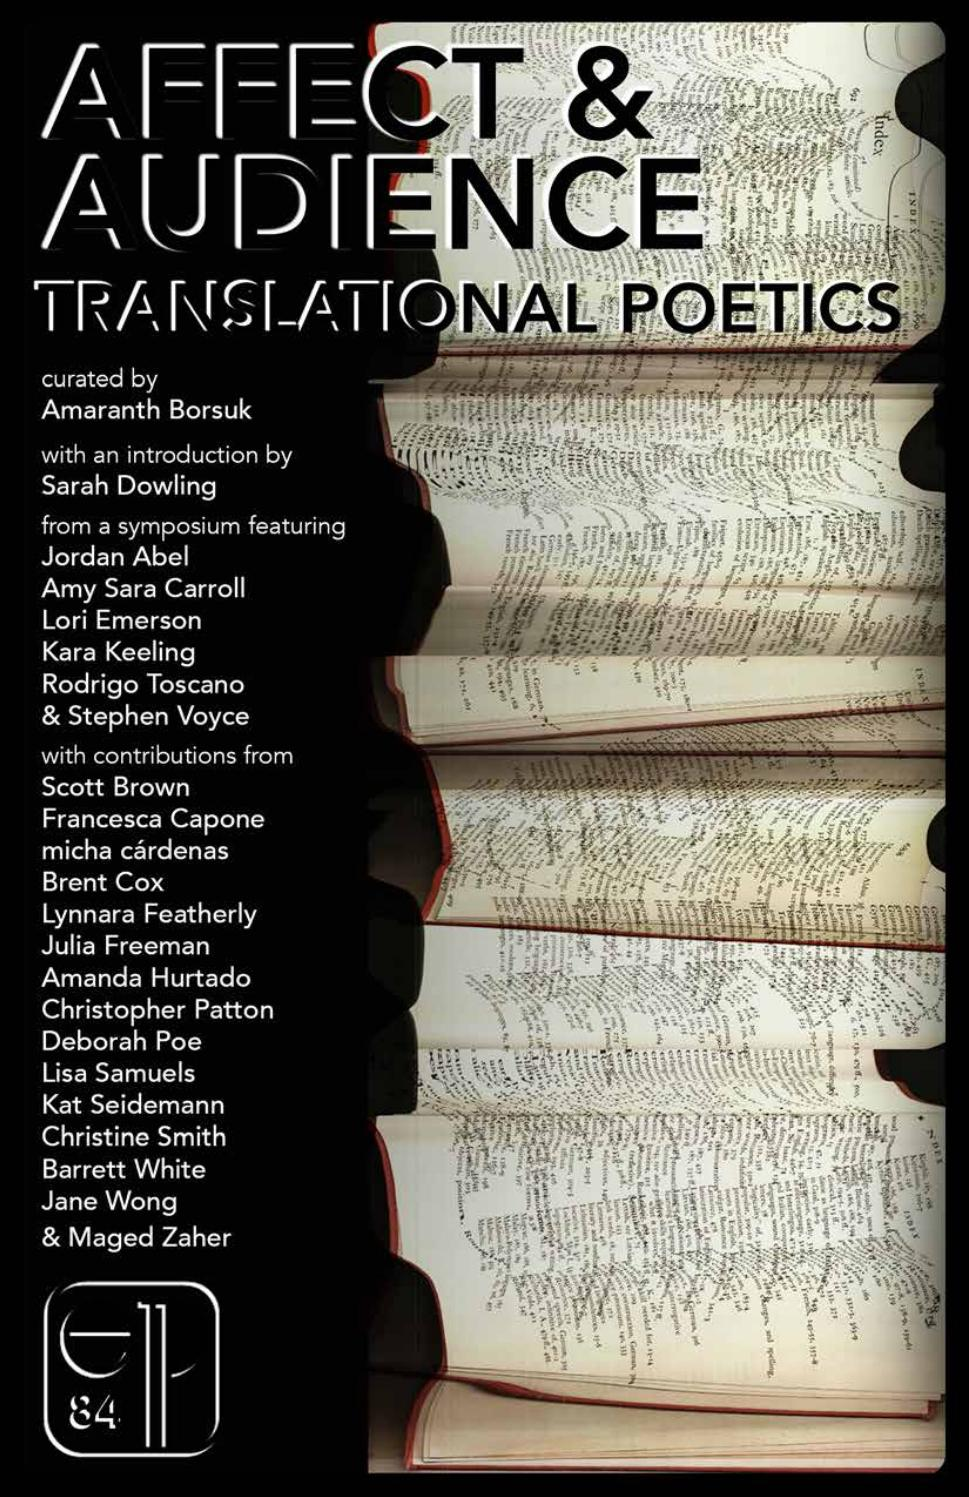 digital books acirc essay press we have commissioned some of our favorite conveners of public discussions to curate conversation based chapbooks overhearing such dialogues among poets